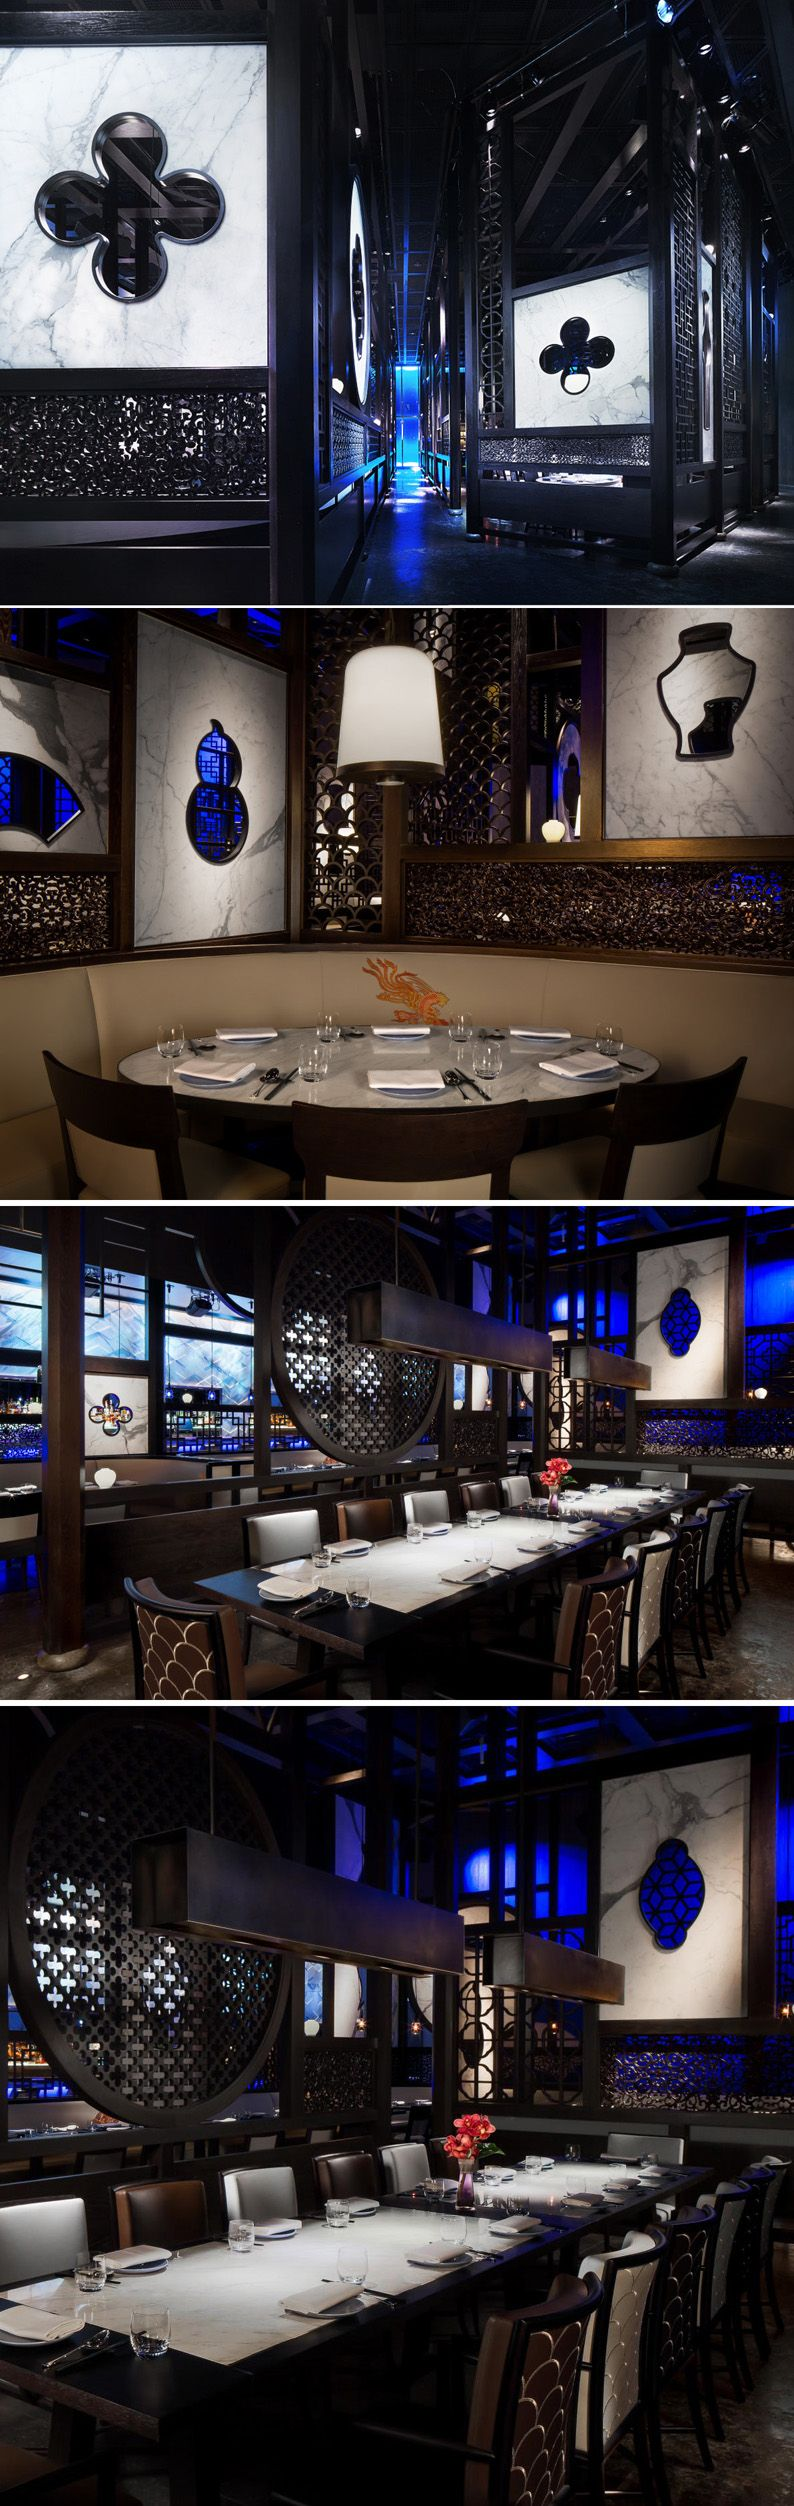 Pin by mark sa on pinterest restaurant - Chinese restaurant interior pictures ...